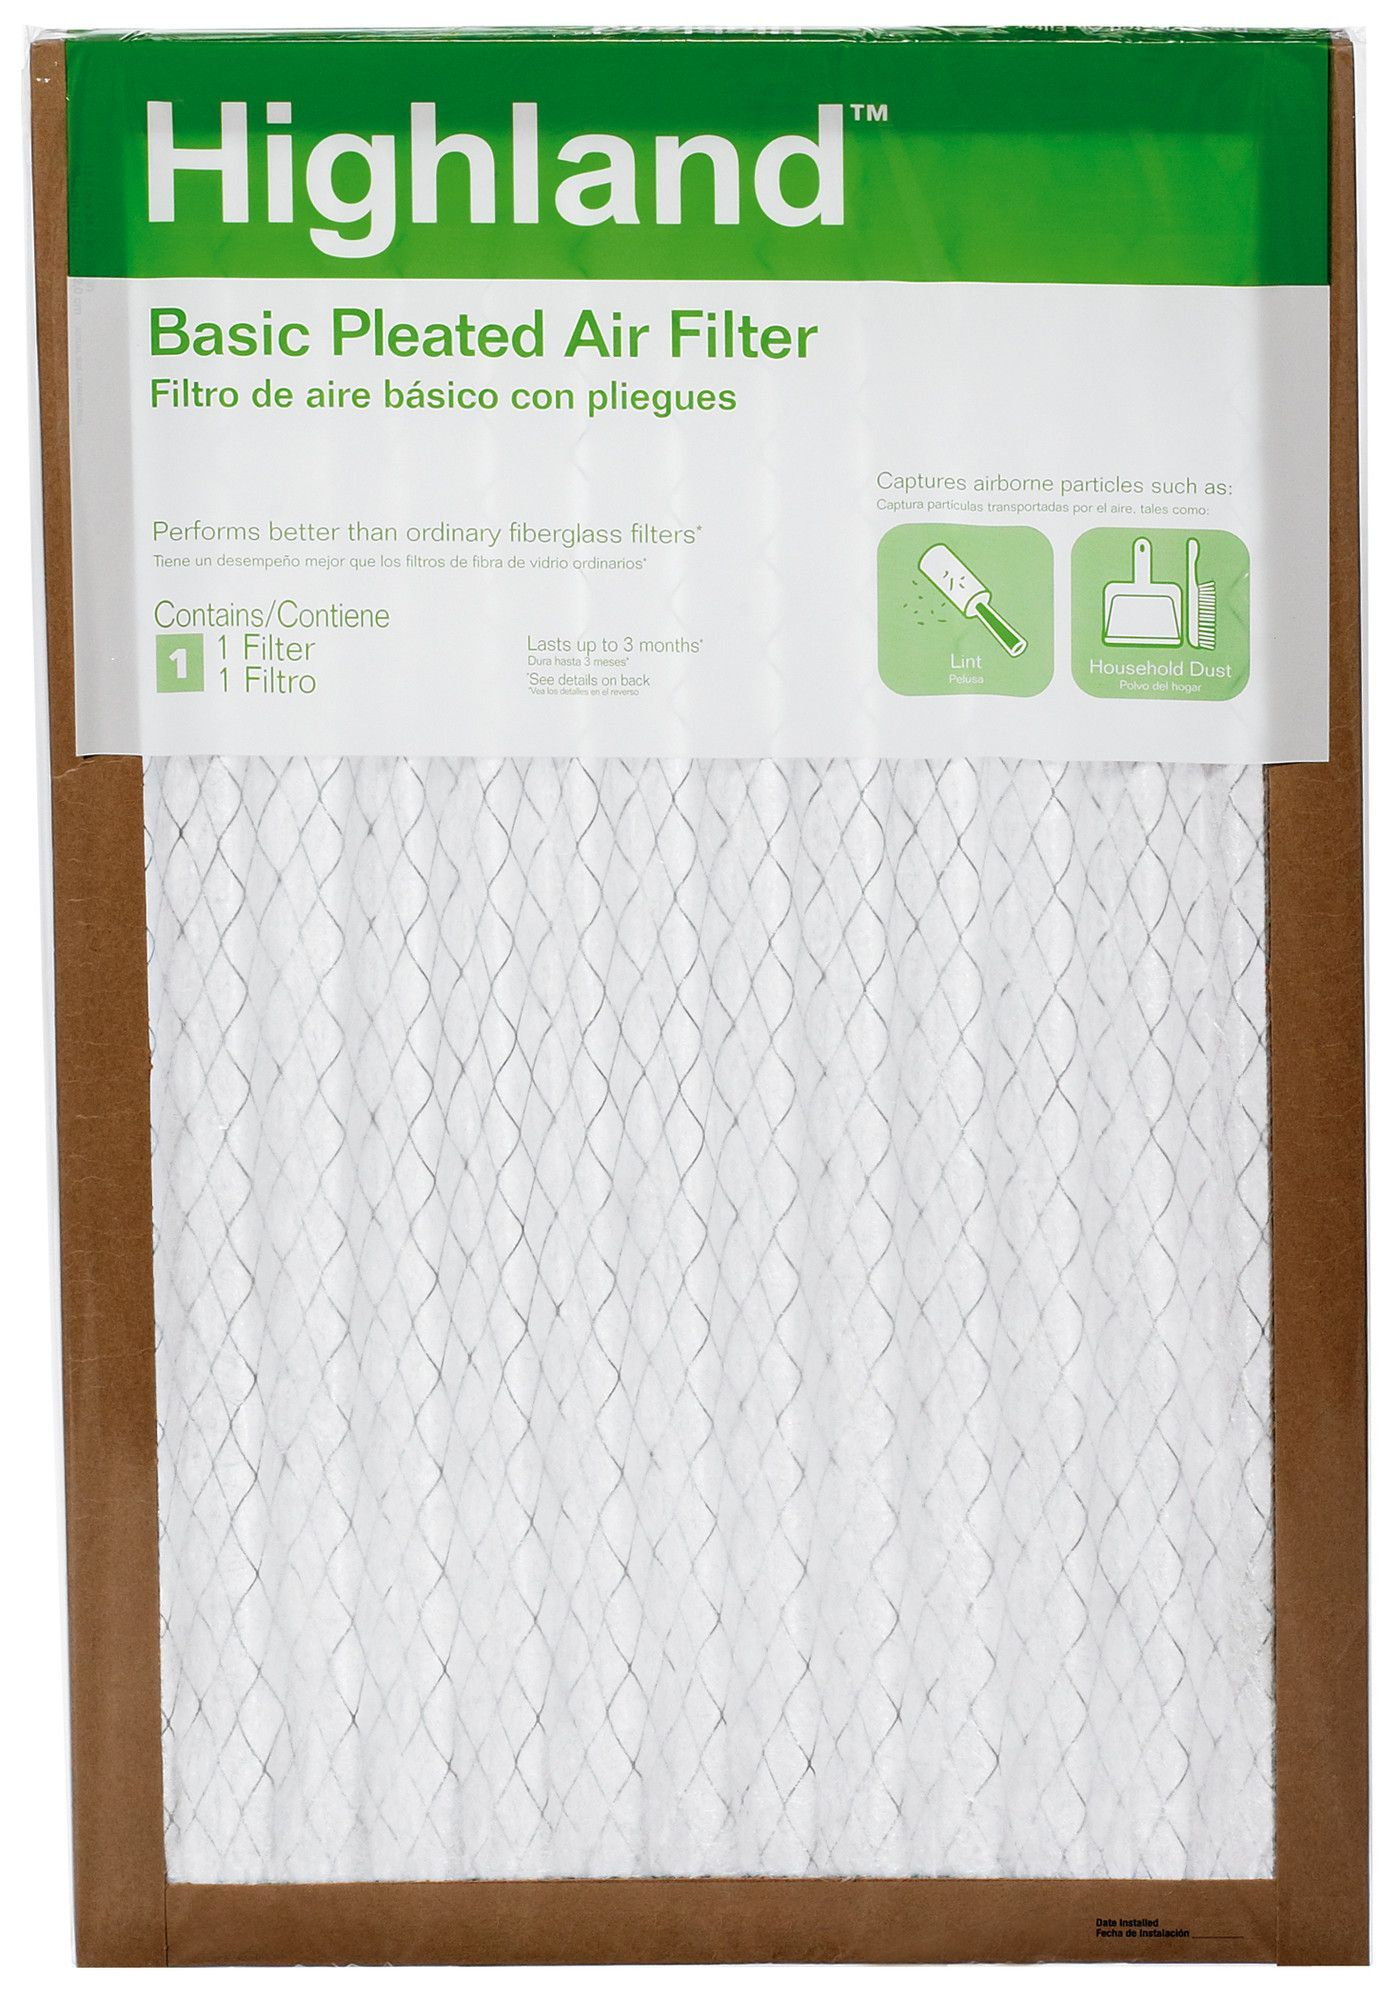 Highland Basic Pleated Air Filter Air filter, Filters